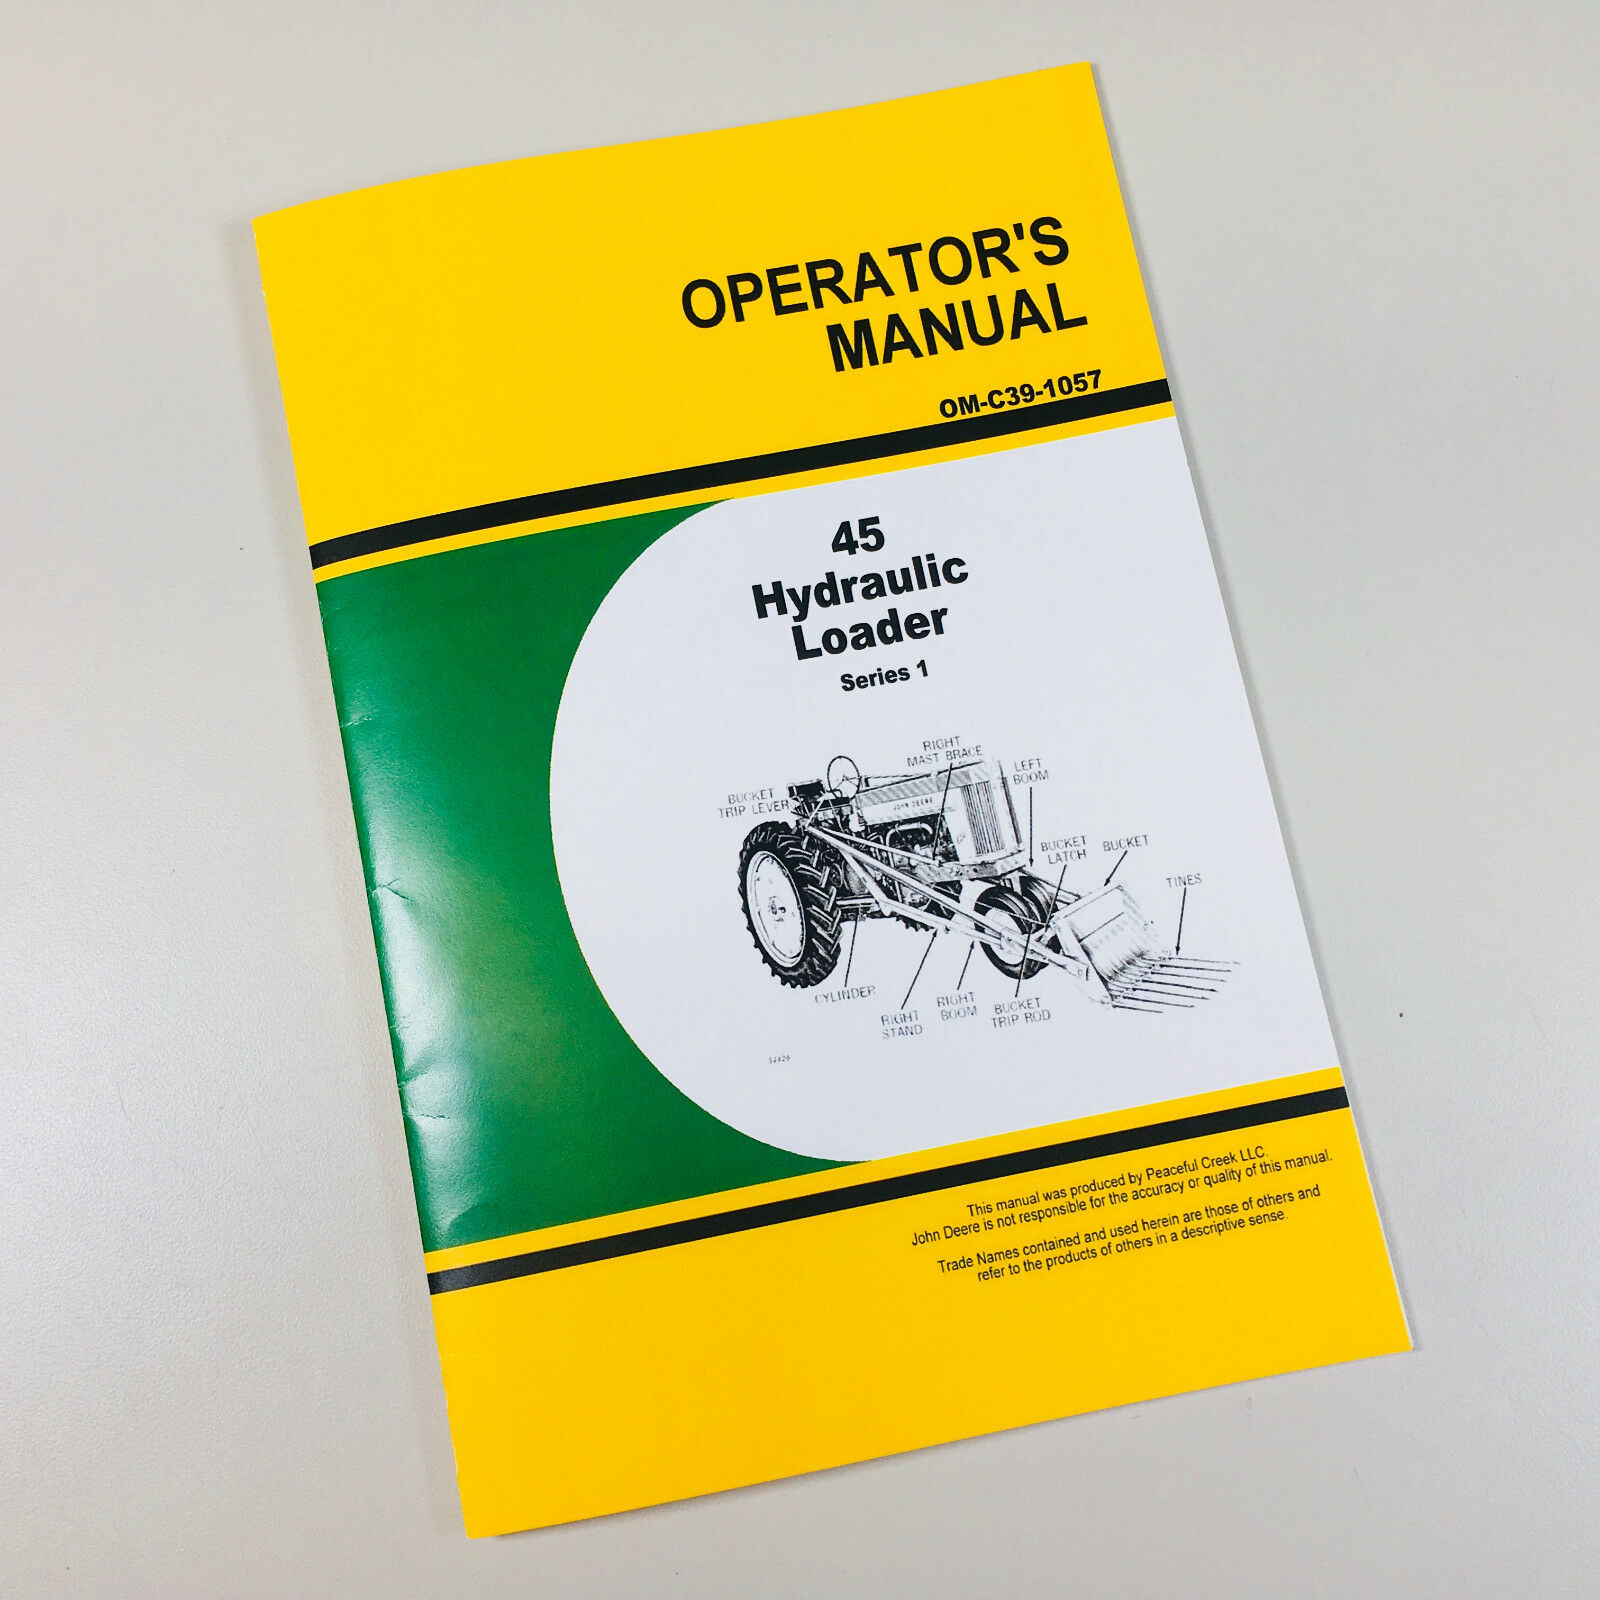 Operators Owners Manual For John Deere 45 Hydraulic Farm Loader Series 1 1  of 5Only 5 available ...